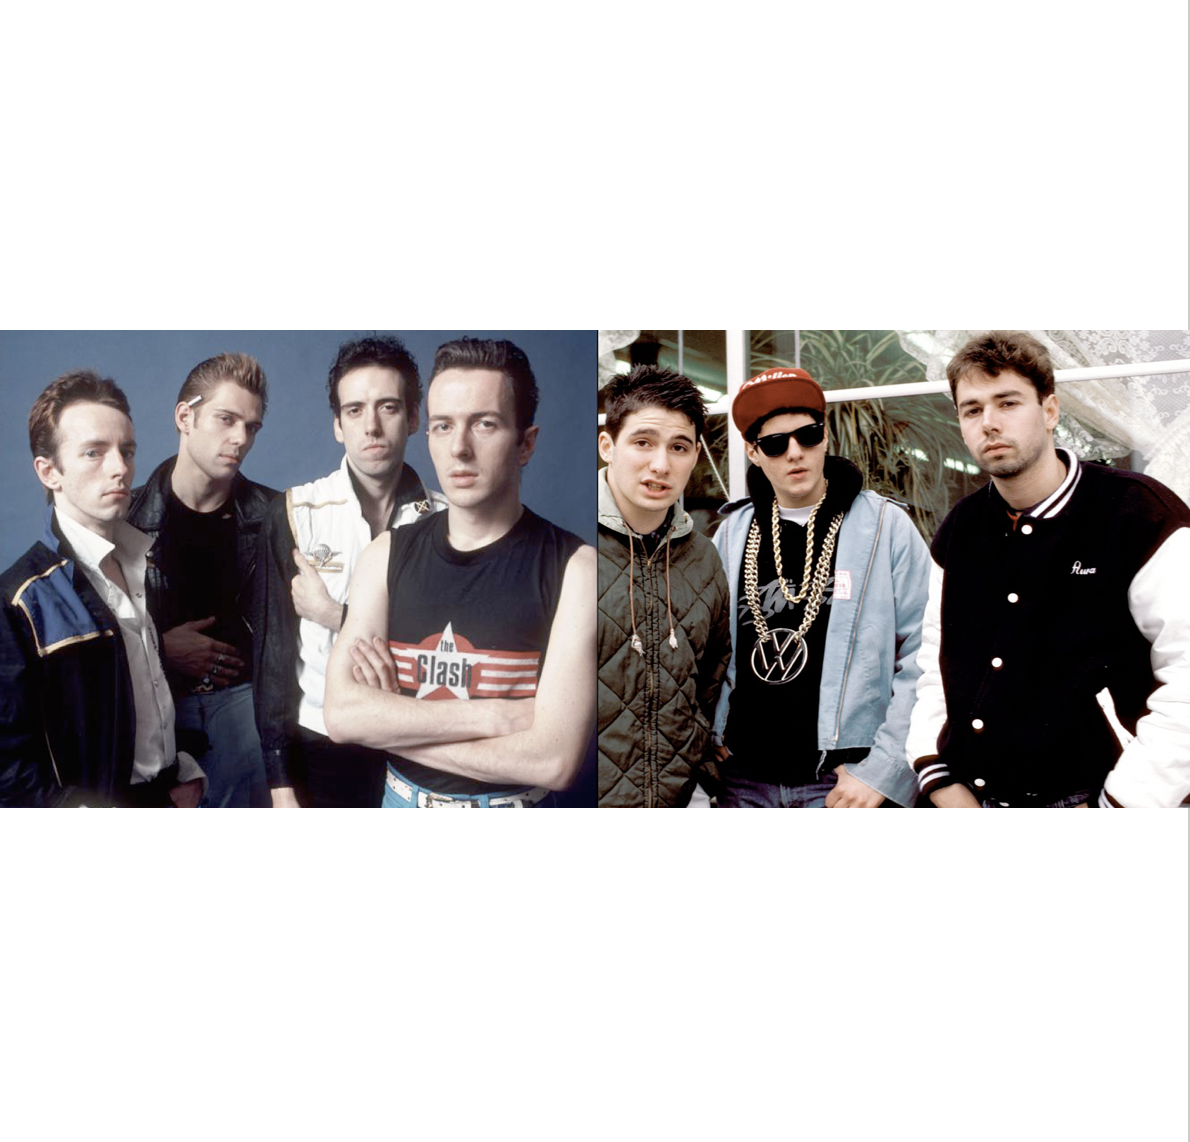 THE CLASH - BEASTIE BOYS  The magnificent galaxy